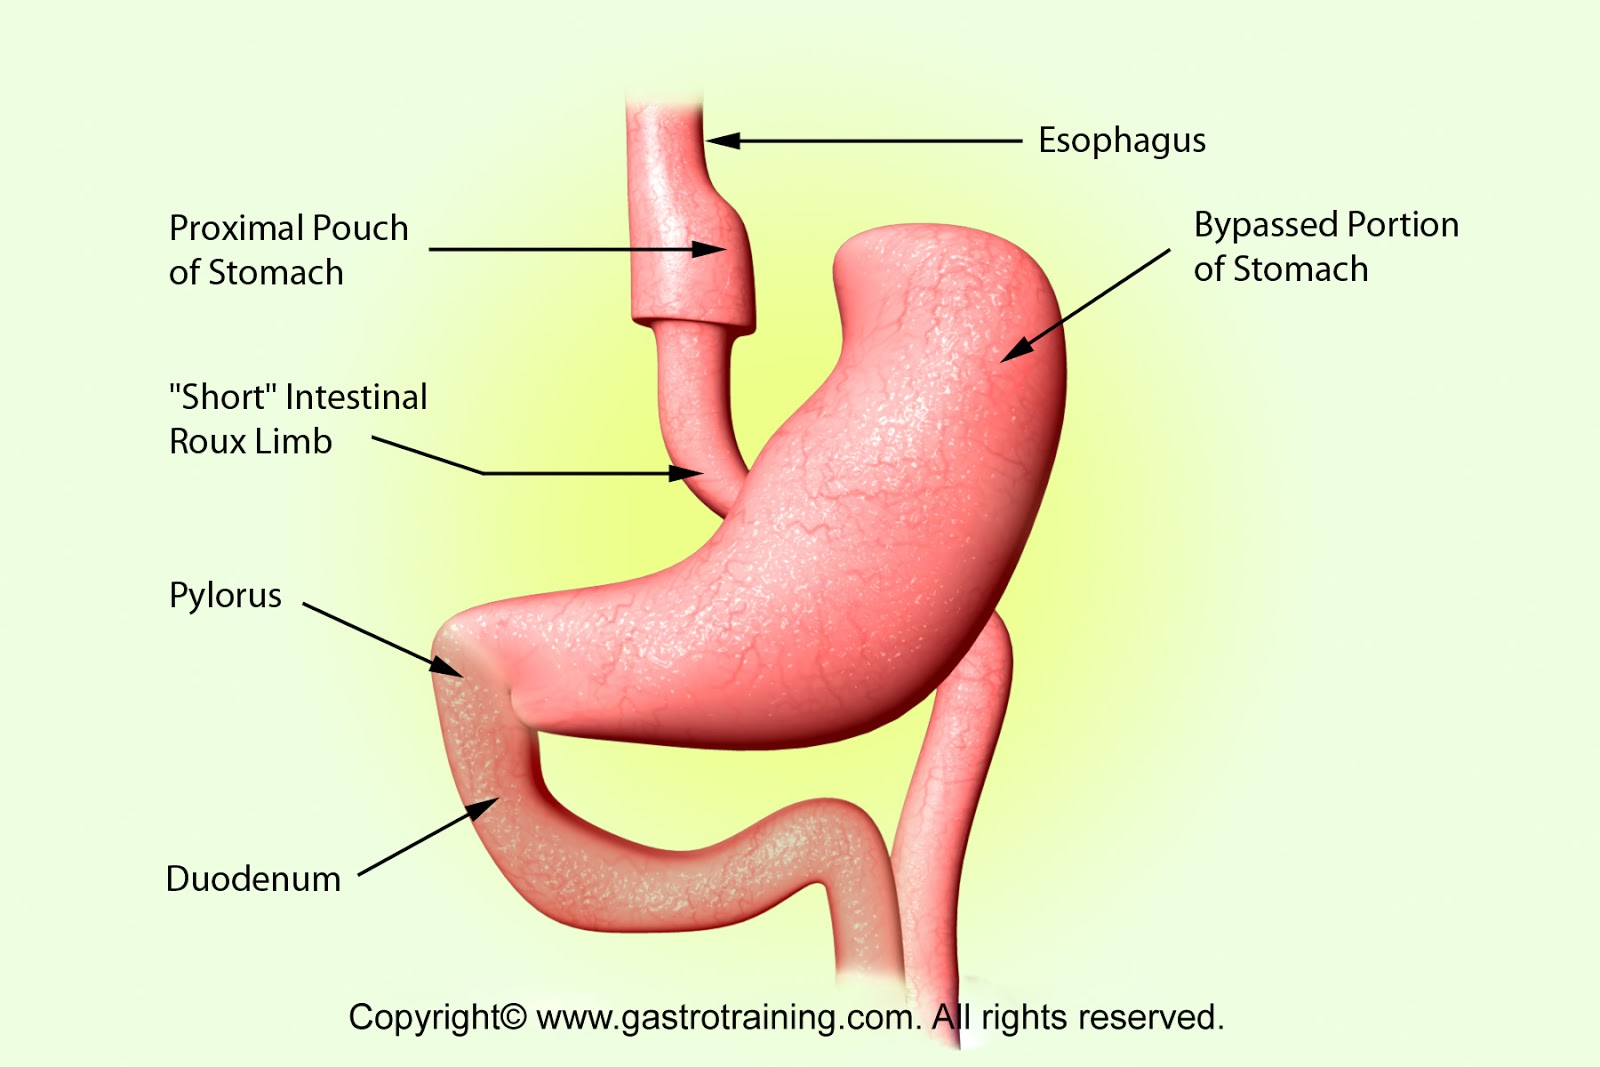 gastroparesis: pyloric stent & pyloroplasty, Human Body